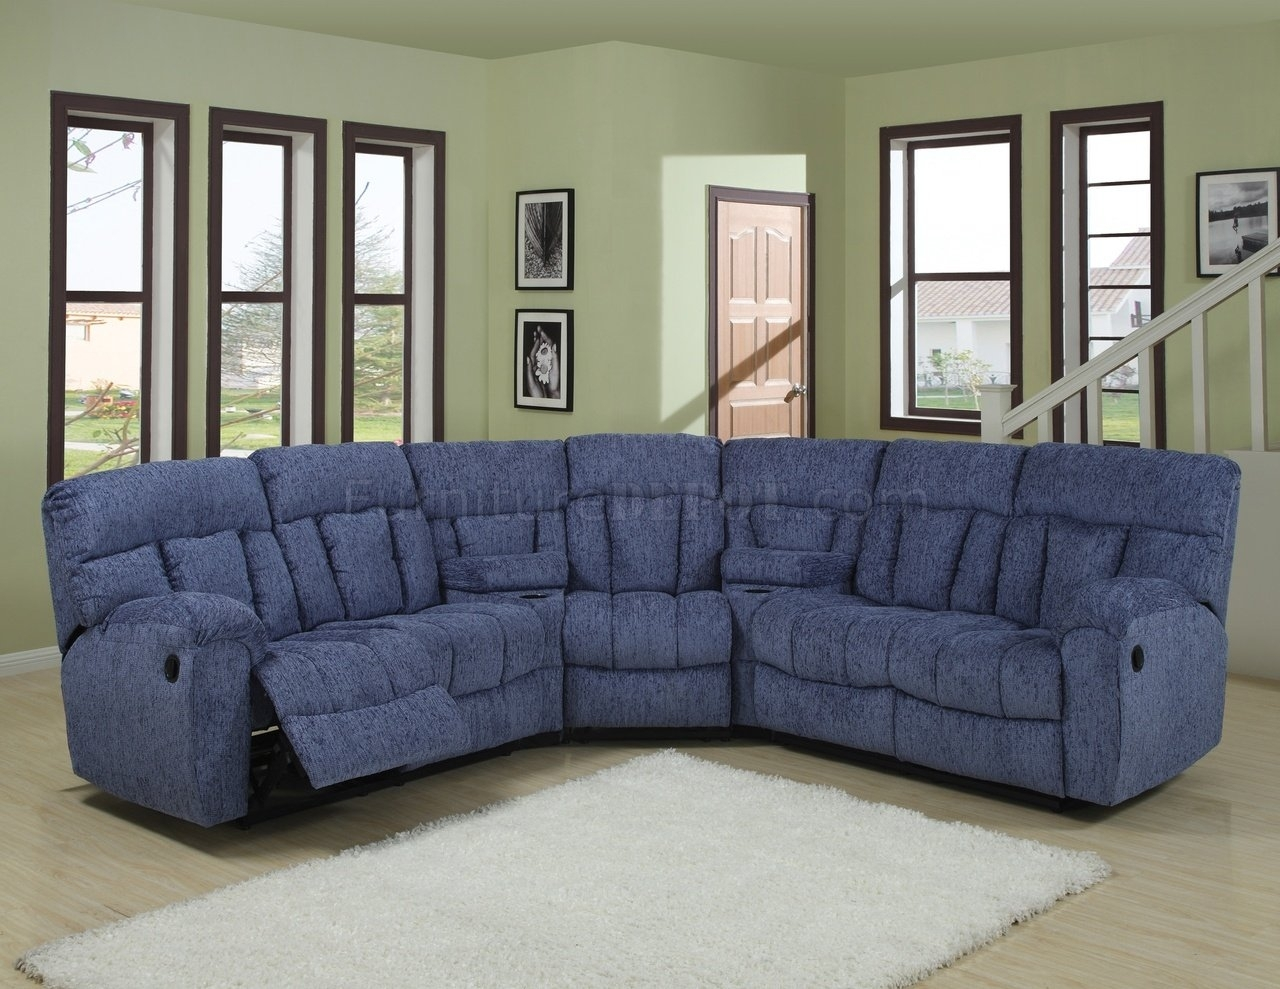 Awesome Blue Sectional Sofa 34 On Sofa Room Ideas With Blue pertaining to Blue Sectional Sofas (Image 3 of 15)